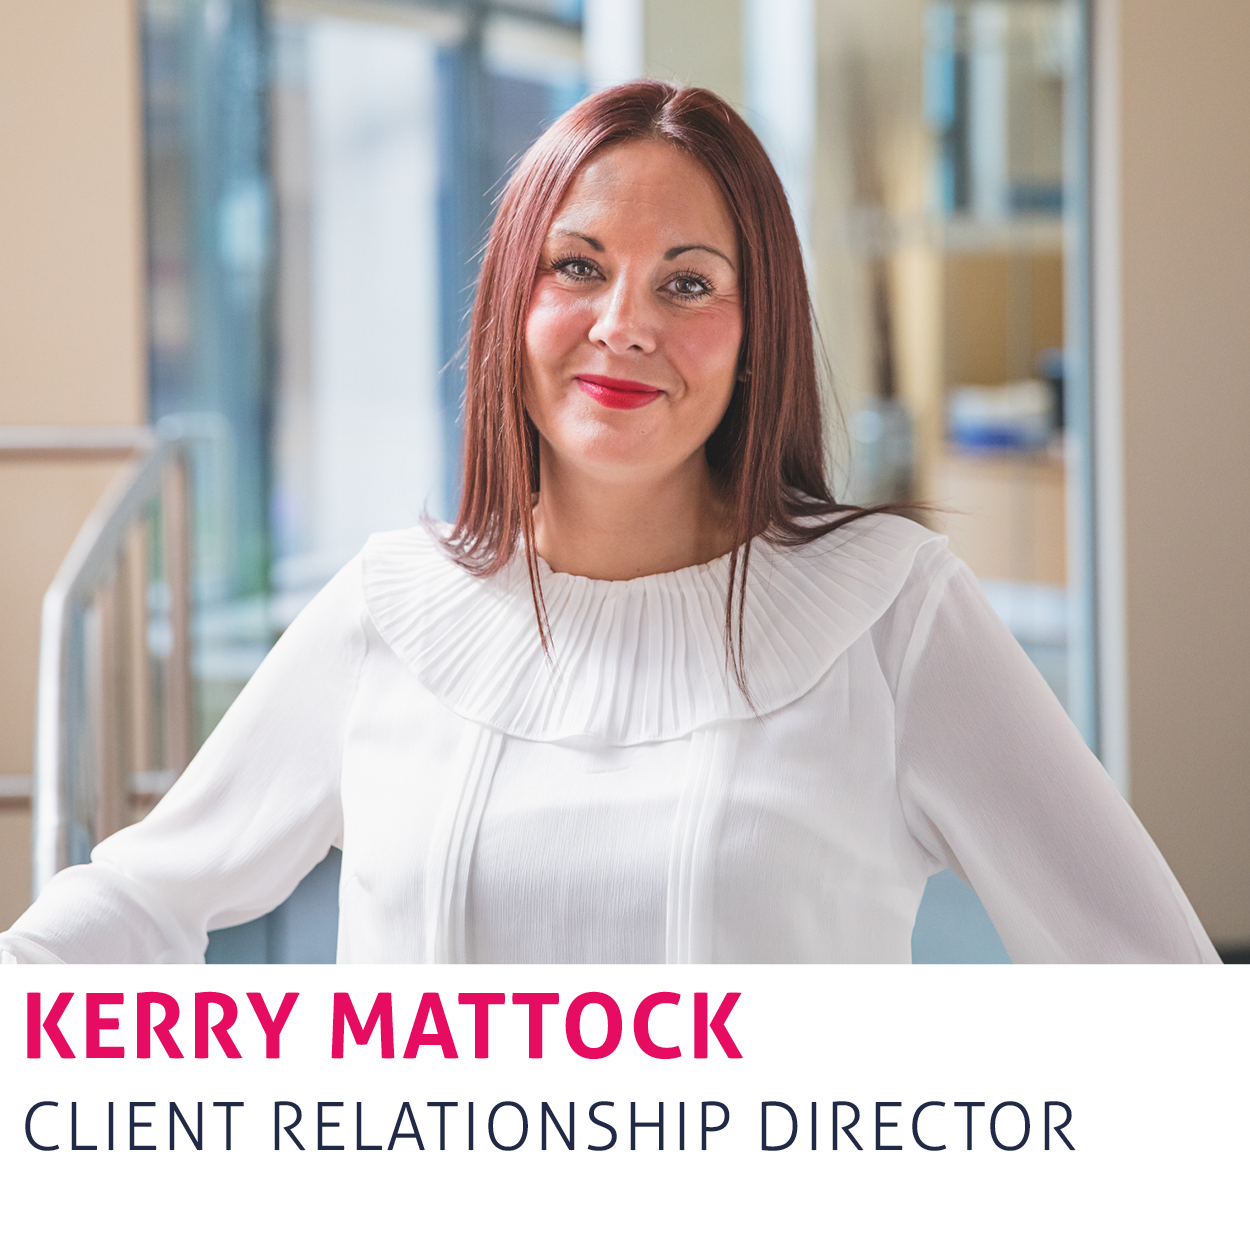 Kerry Mattock - Client Relationship Director